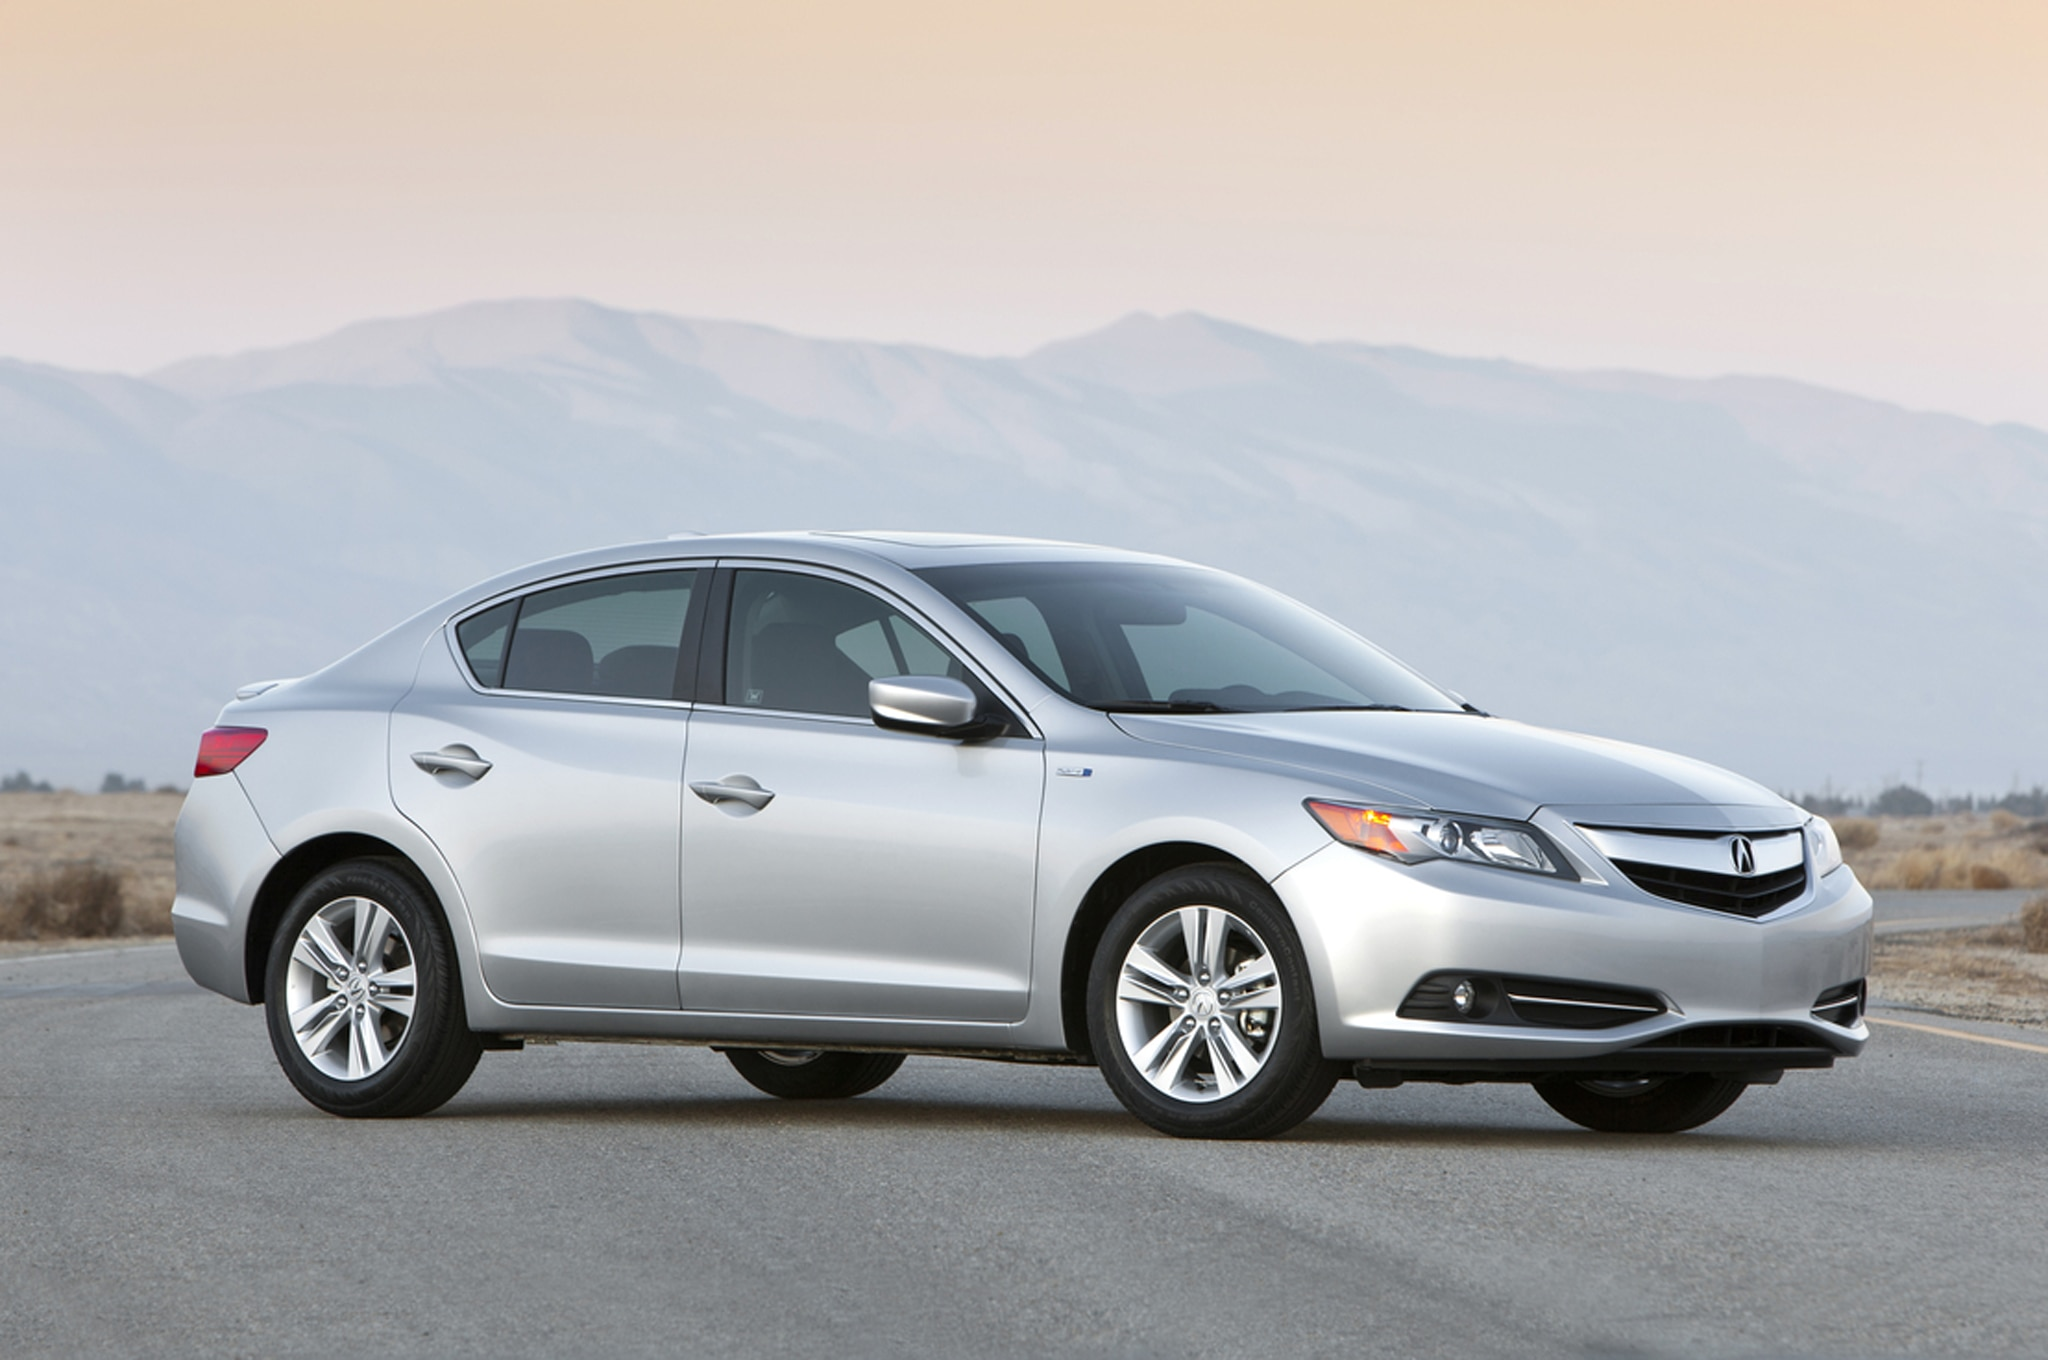 priced 2014 acura ilx hybrid msrp at 29 795. Black Bedroom Furniture Sets. Home Design Ideas